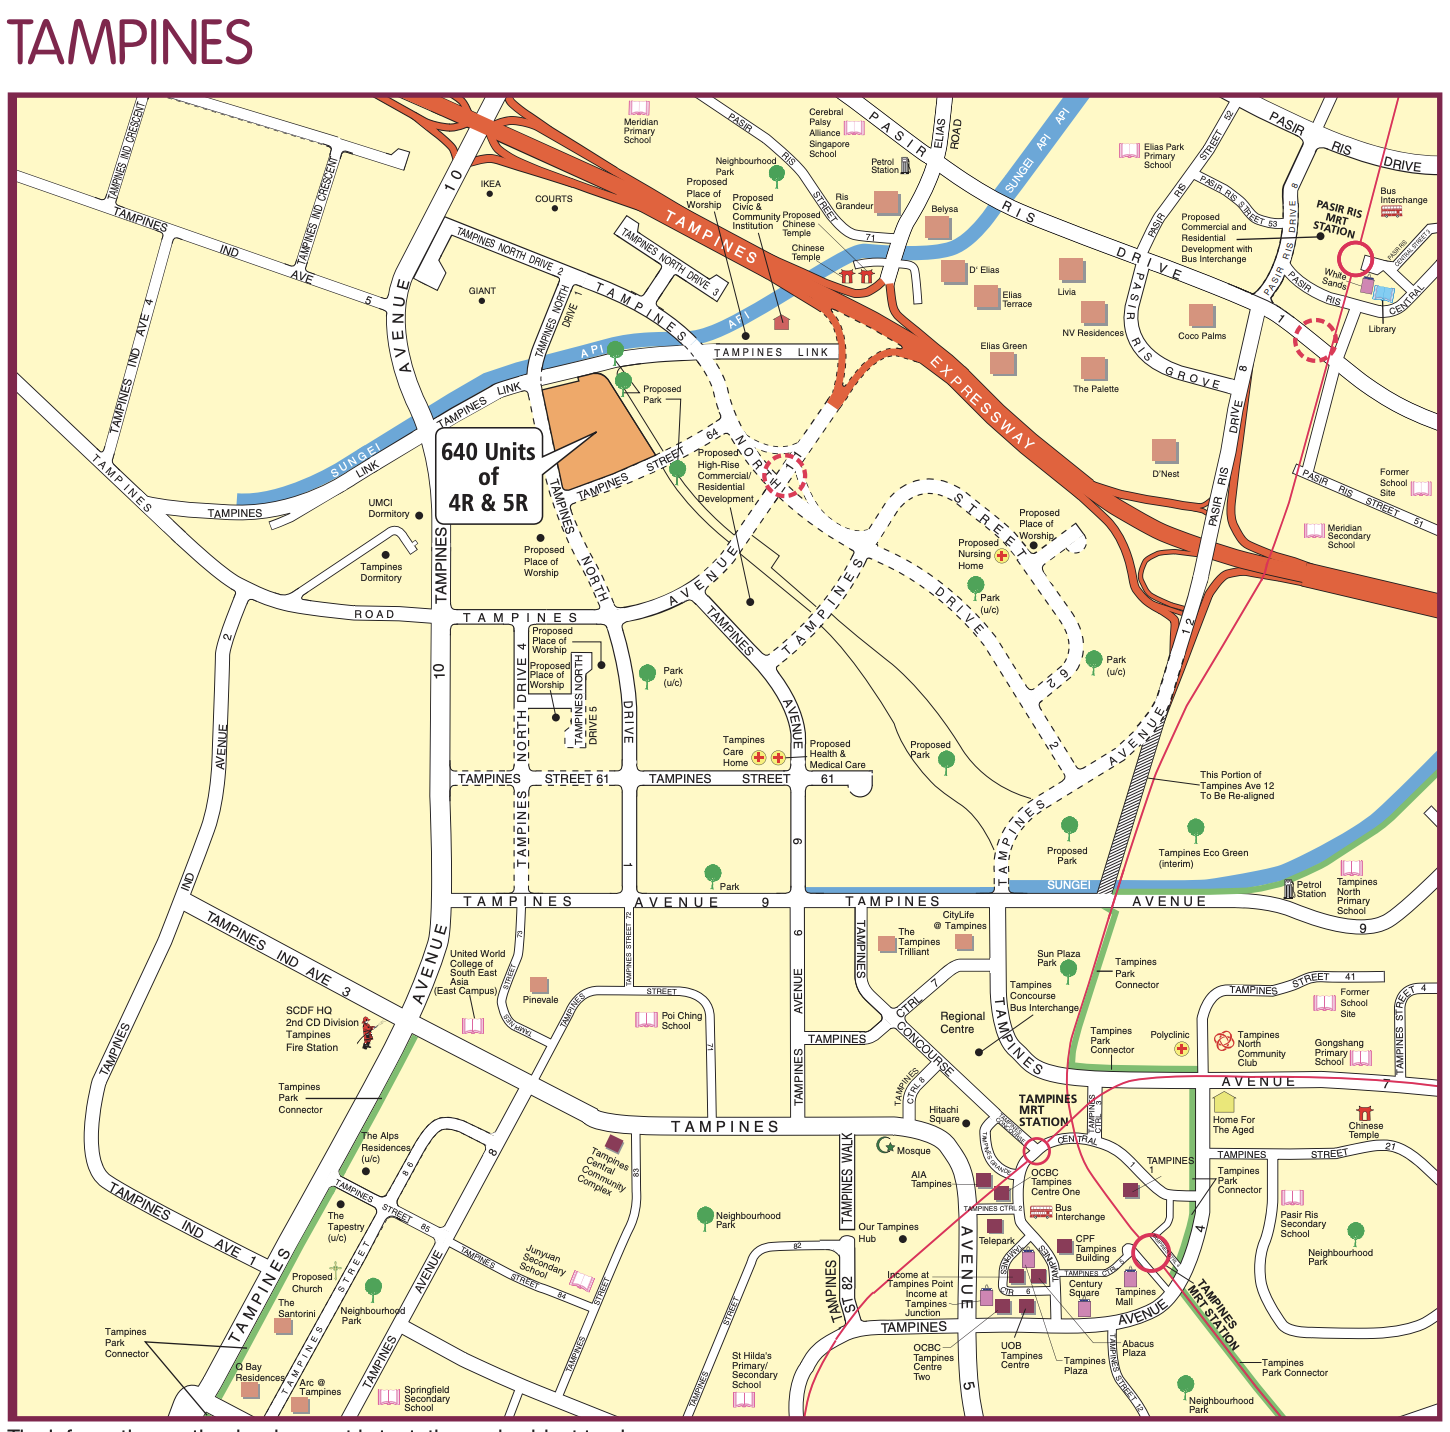 Map of Tampines BTO Plan